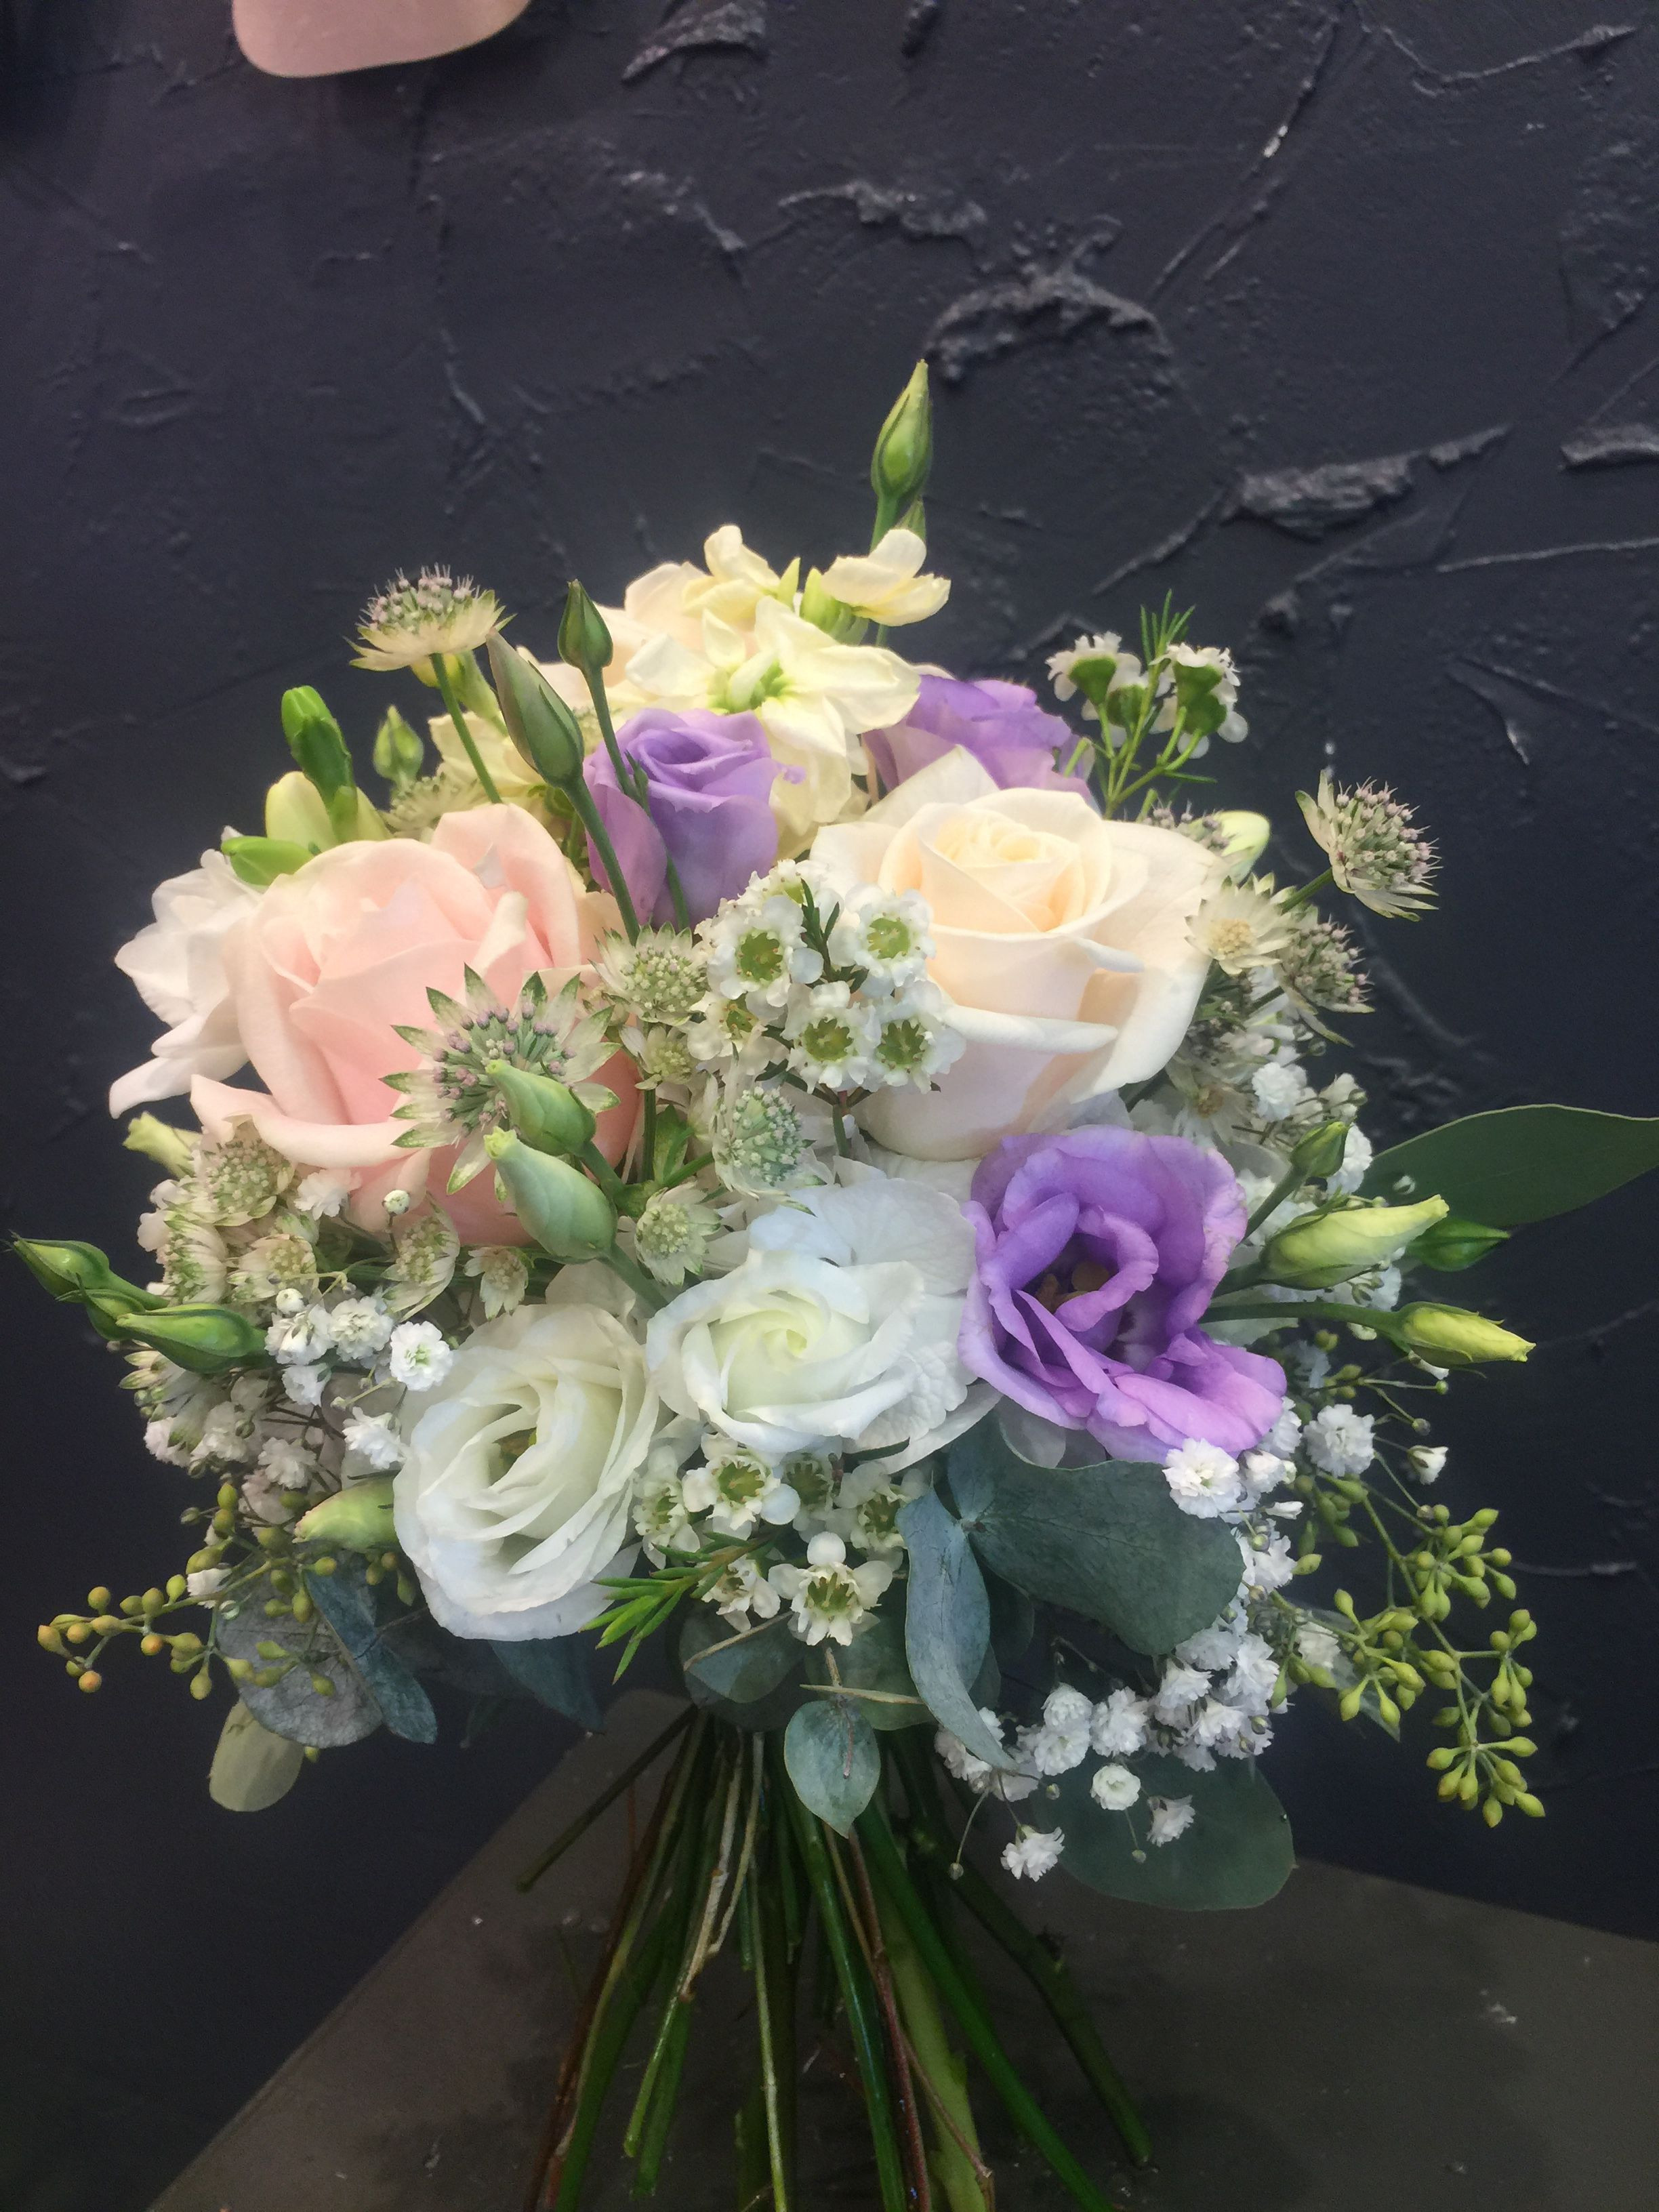 Attractive Bridal bouquet with Sweet Avalanche roses lisianthus astrantia wax flowers gypsophila